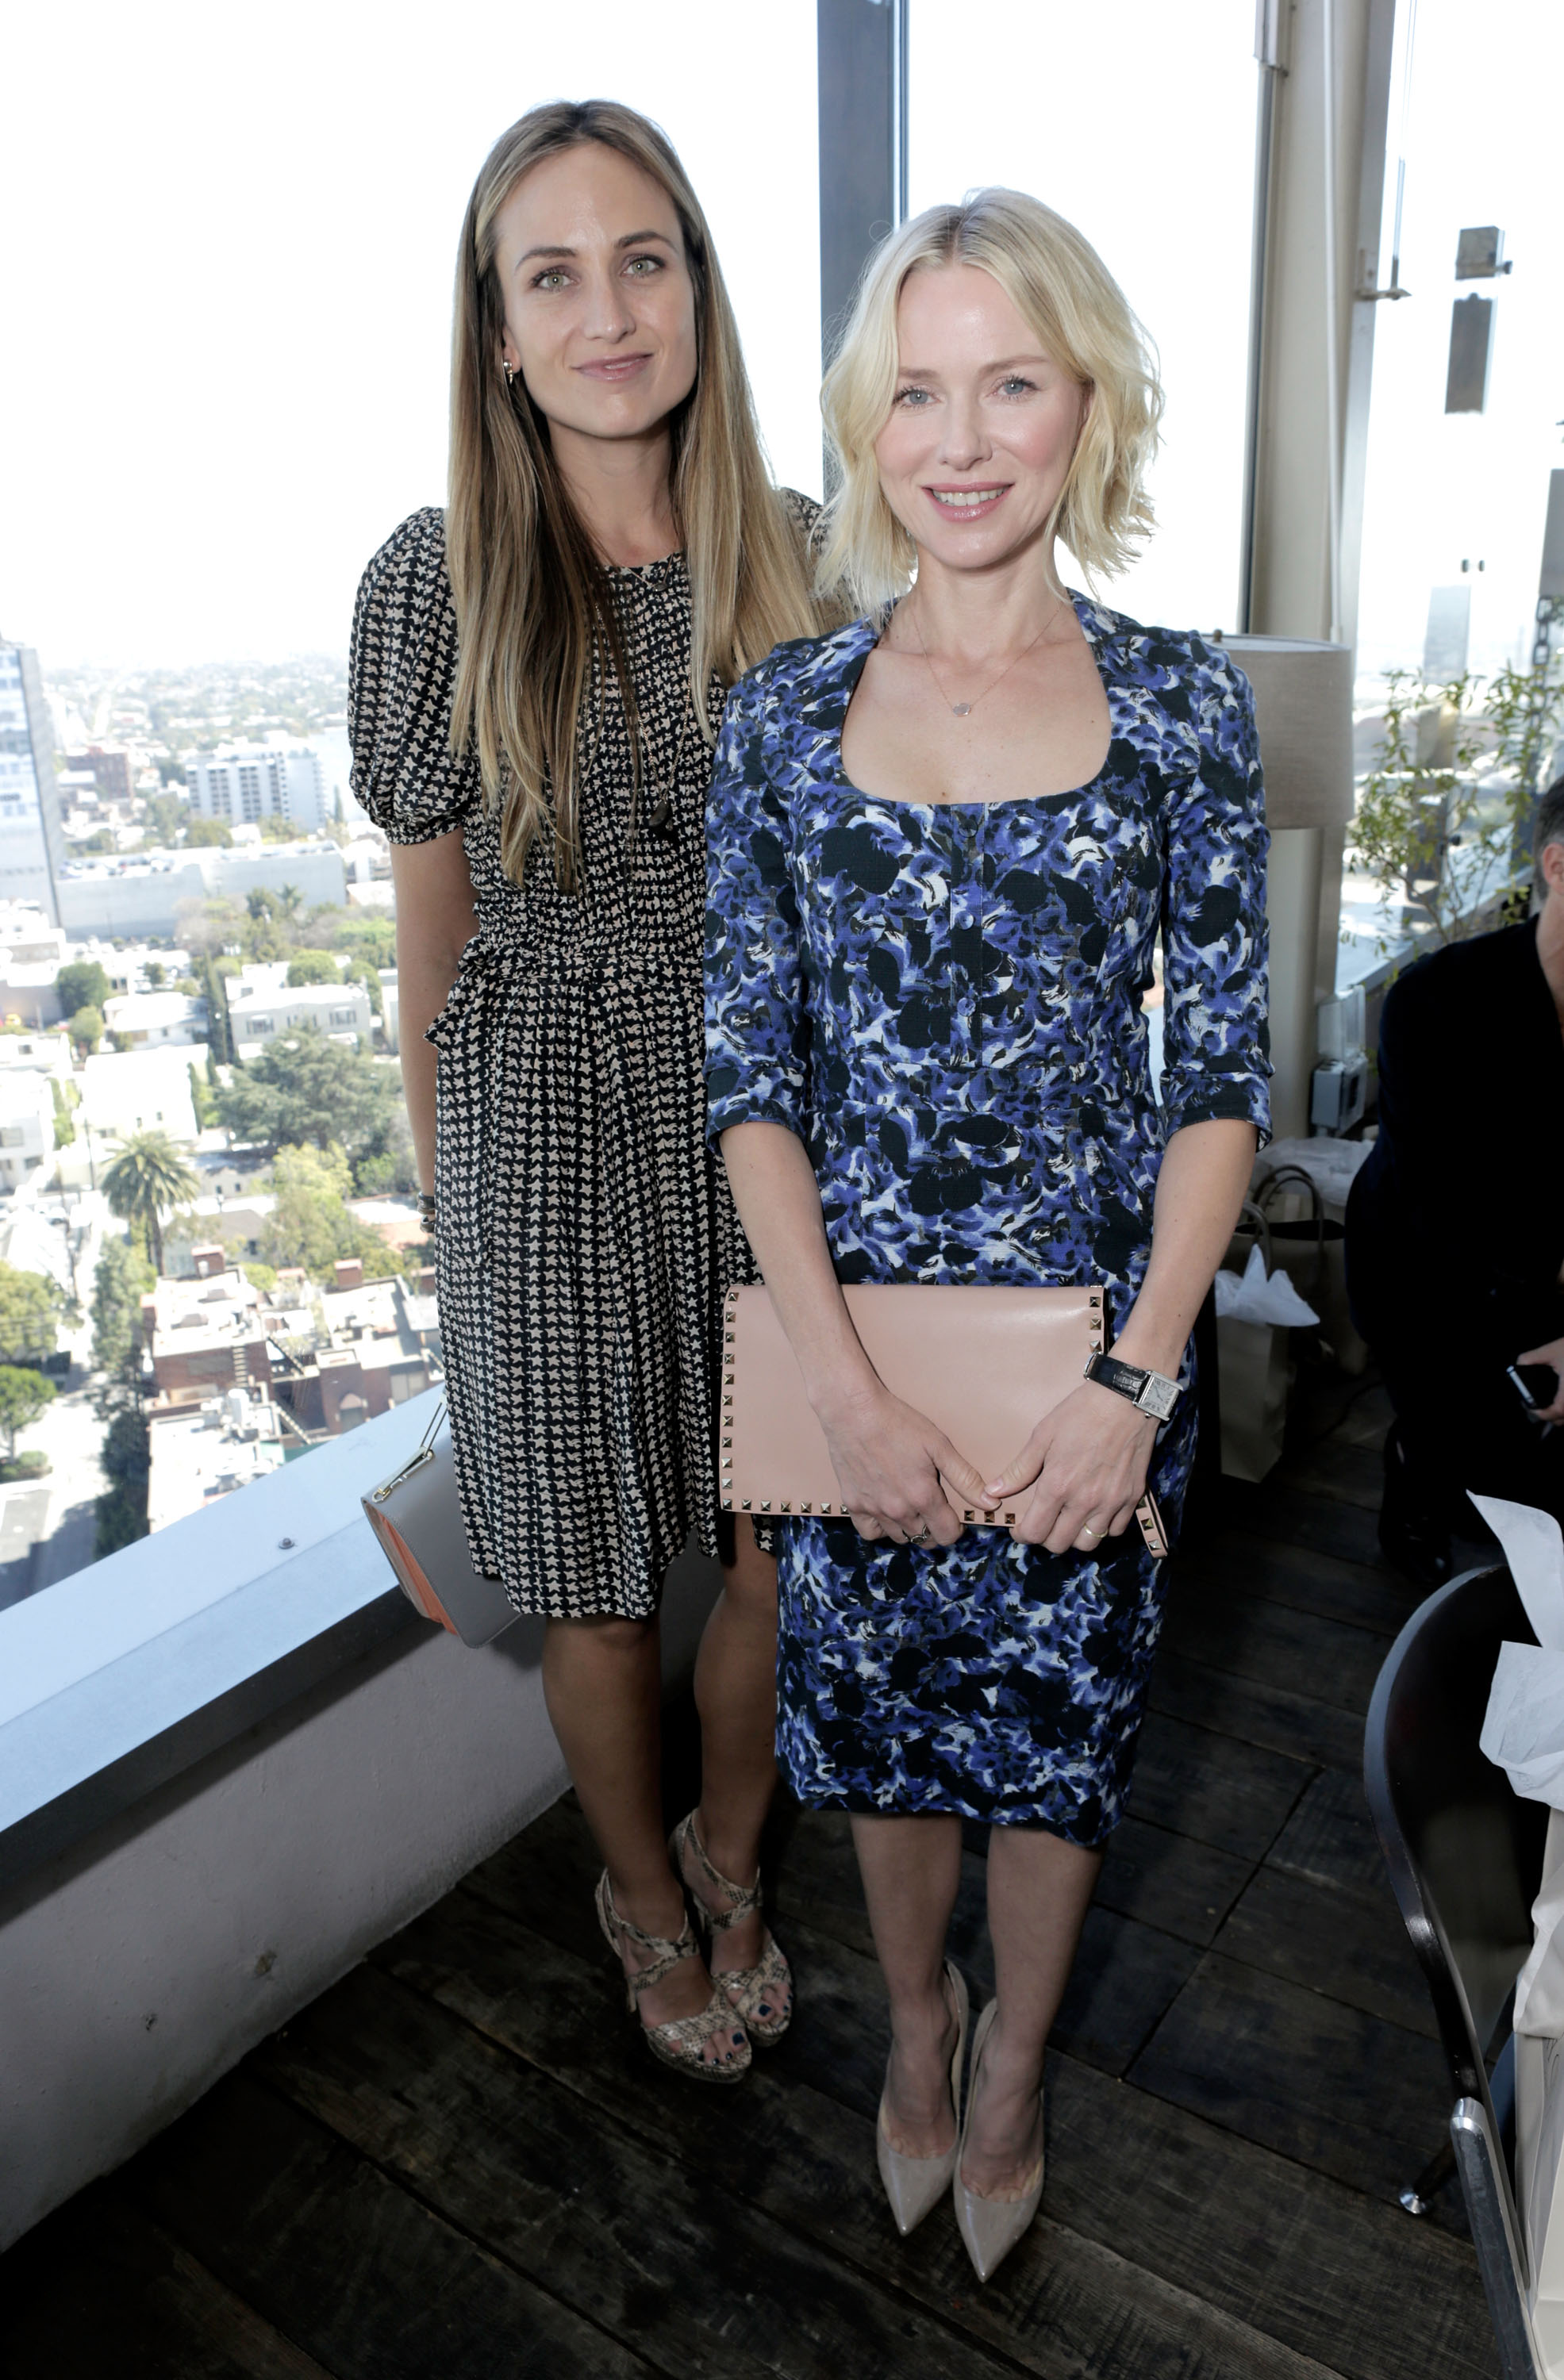 Naomi Watts picked a floral Erdem dress from the Resort 2013 collection, then completed her sweet look with nude Jimmy Choo shoes and a studded Valentino clutch while posing with stylist Jeanann Williams.